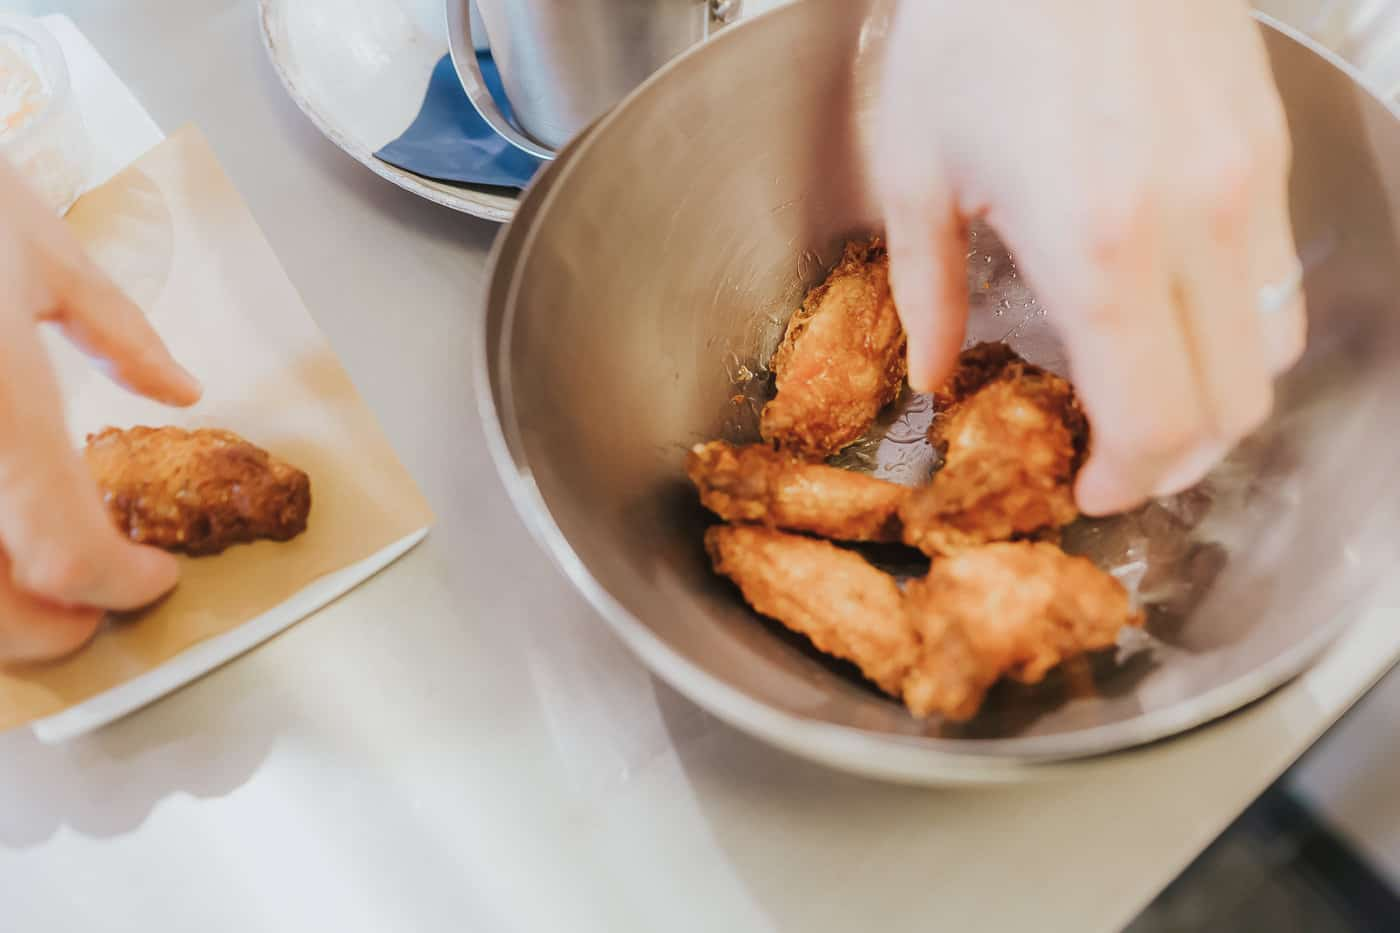 Deep fried chicken wings being seasoned and served onto a plate